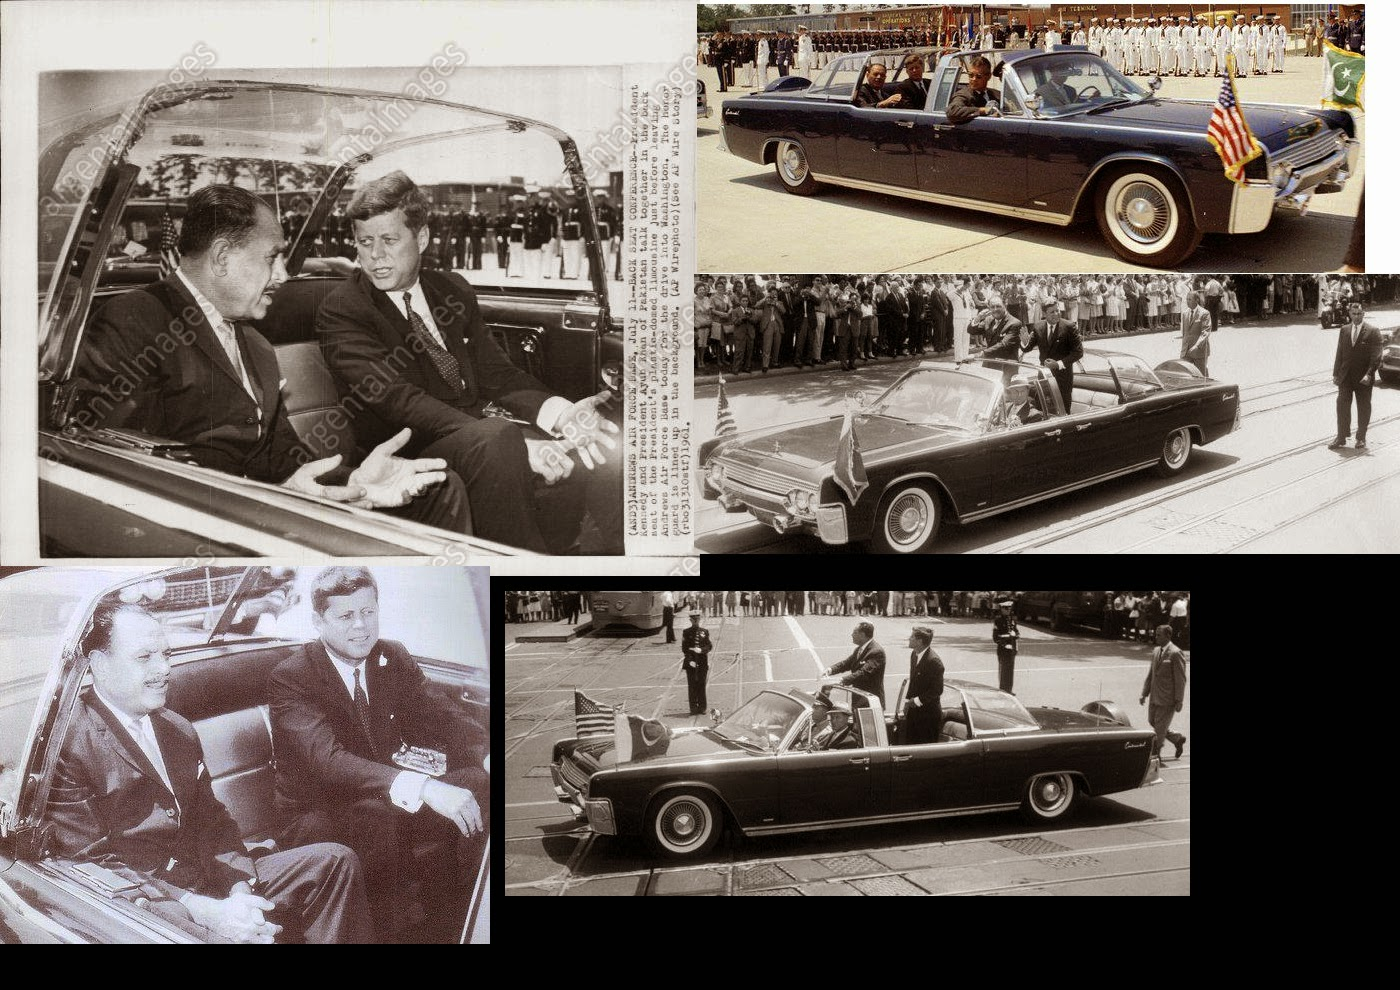 JFK bubbletop Washington, D.C. 7/11/61